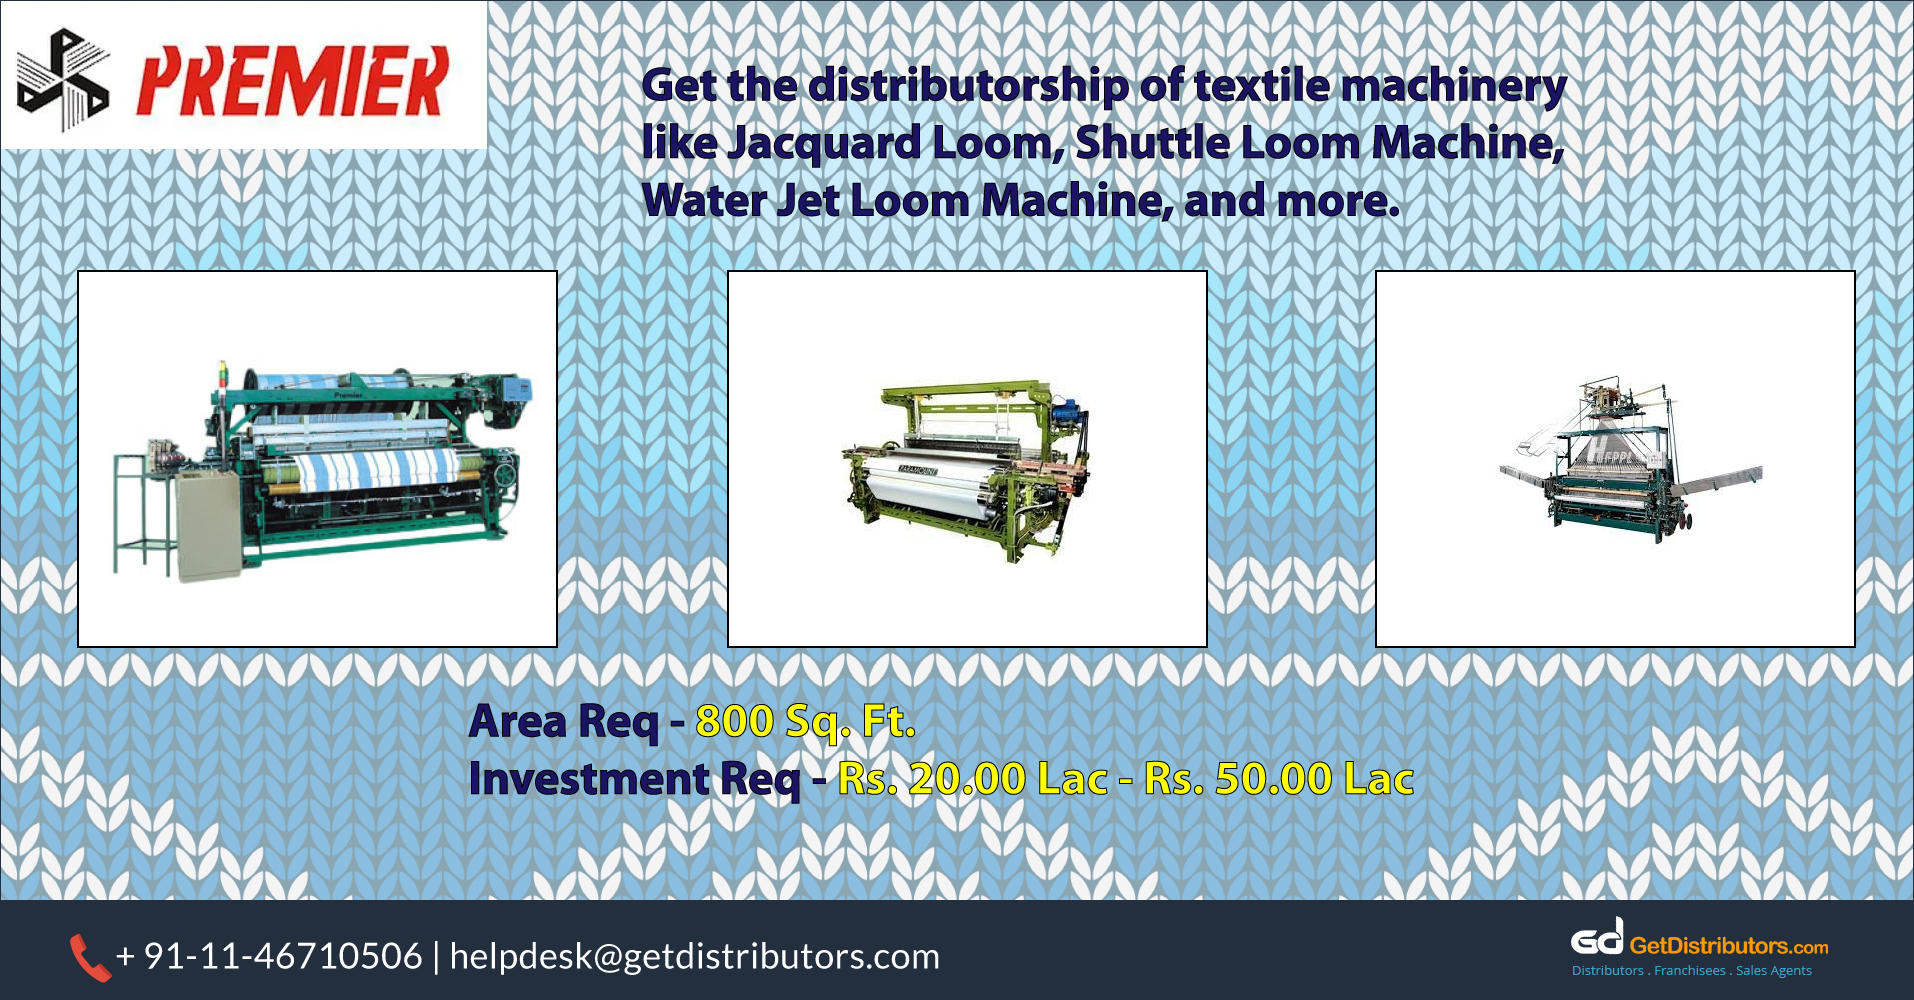 Easy To Operate & Efficient Textile And Garment Machinery